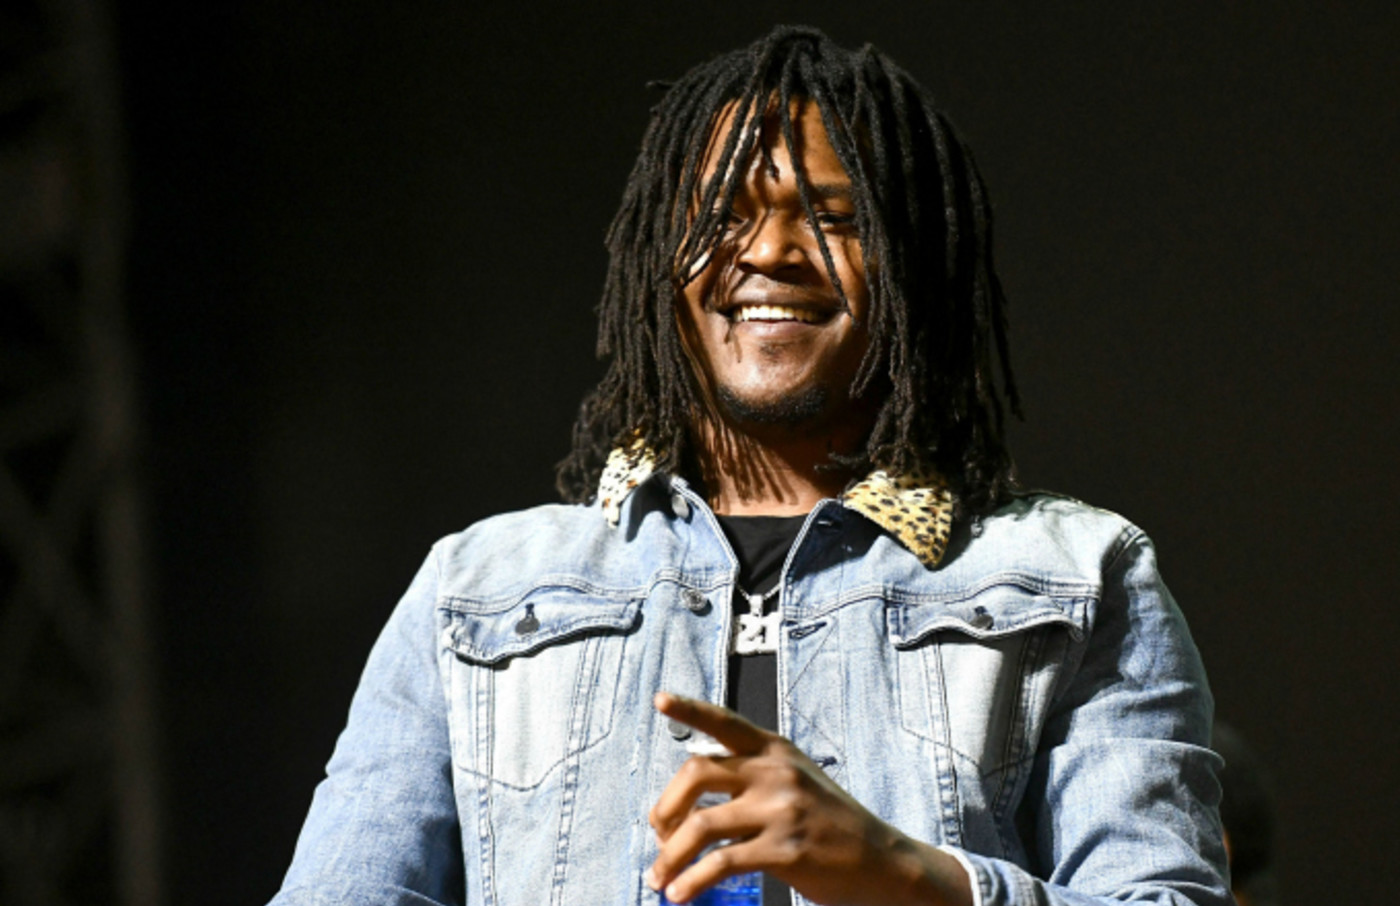 Rapper Young Nudy performs onstage